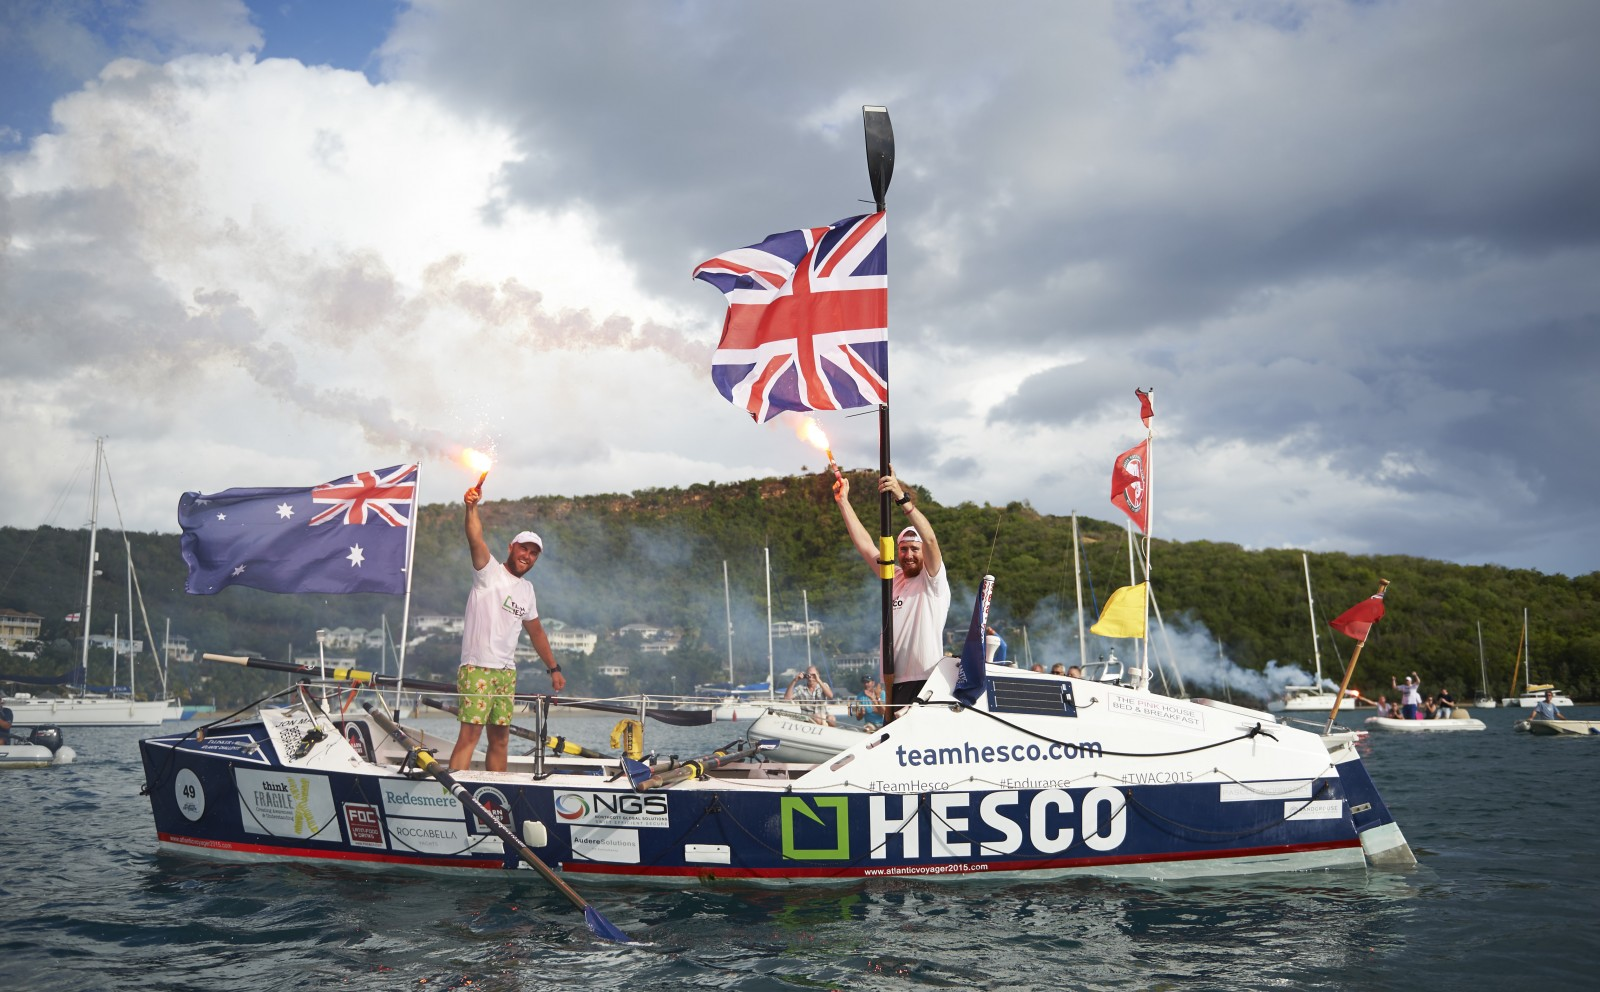 Team Hesco